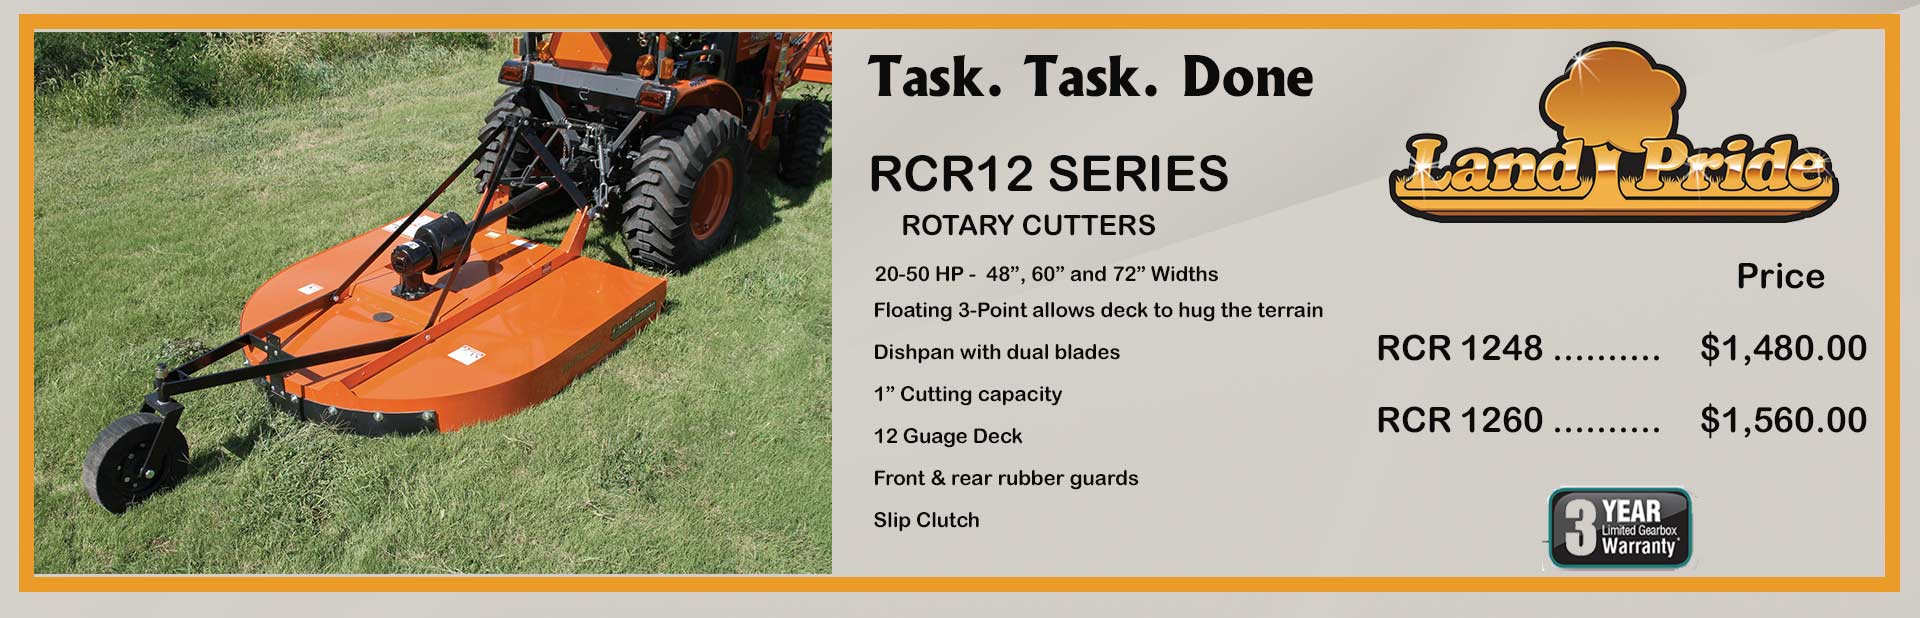 Land Pride Rotary Cutters